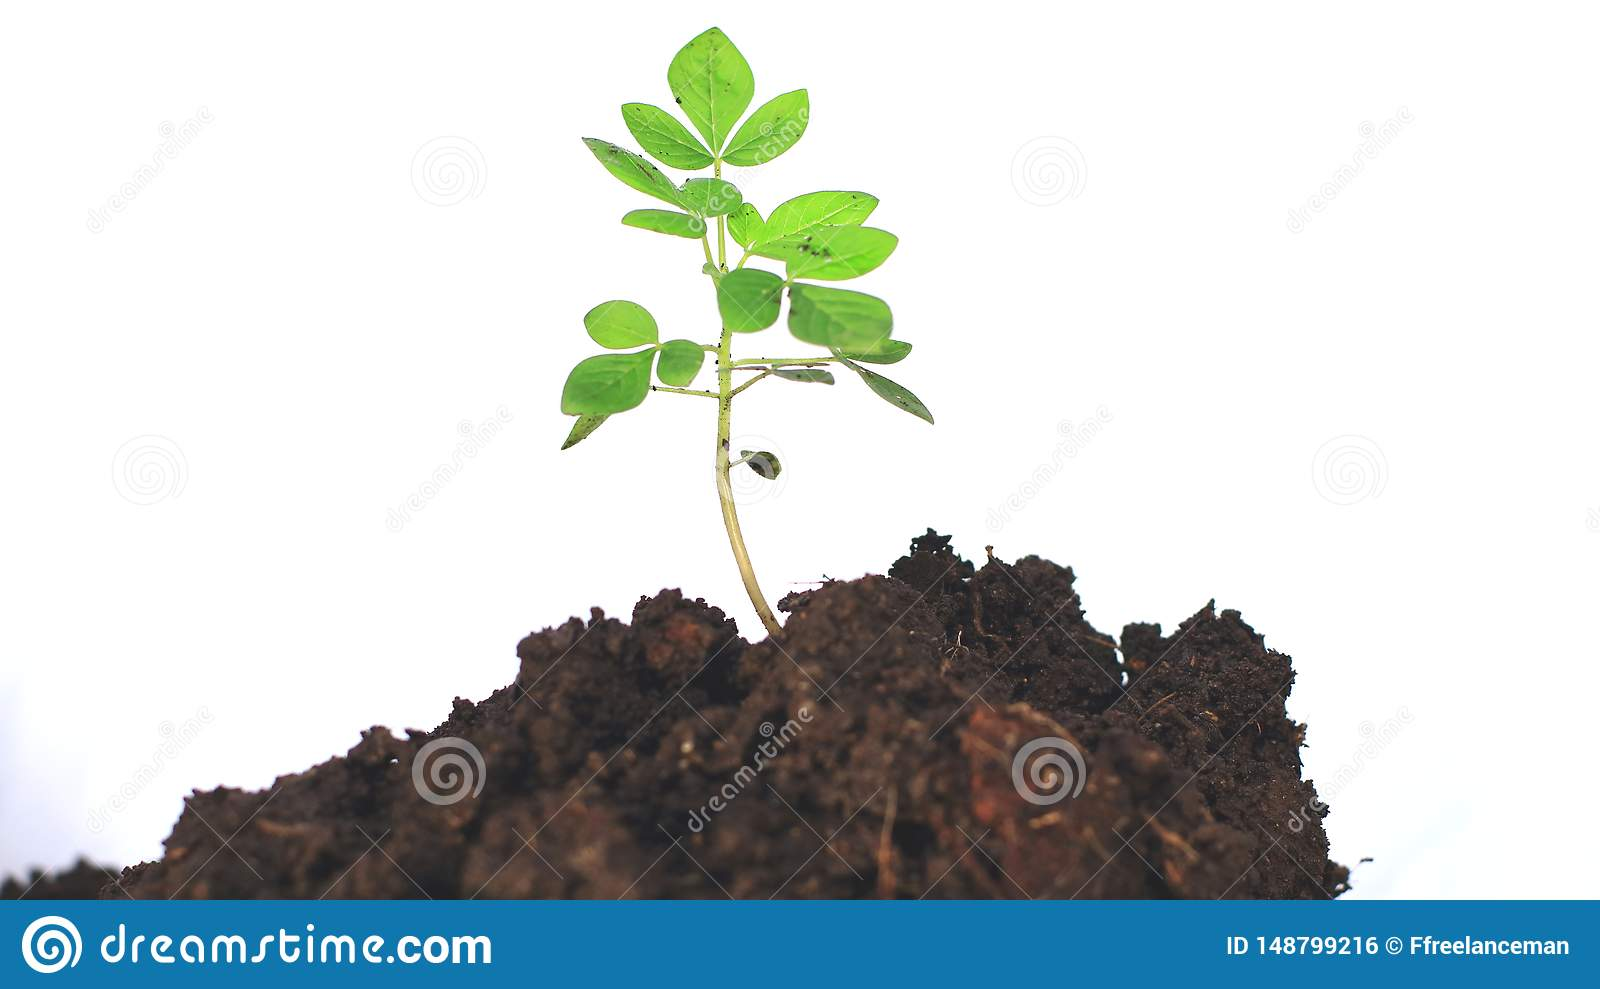 Planting trees on a white background